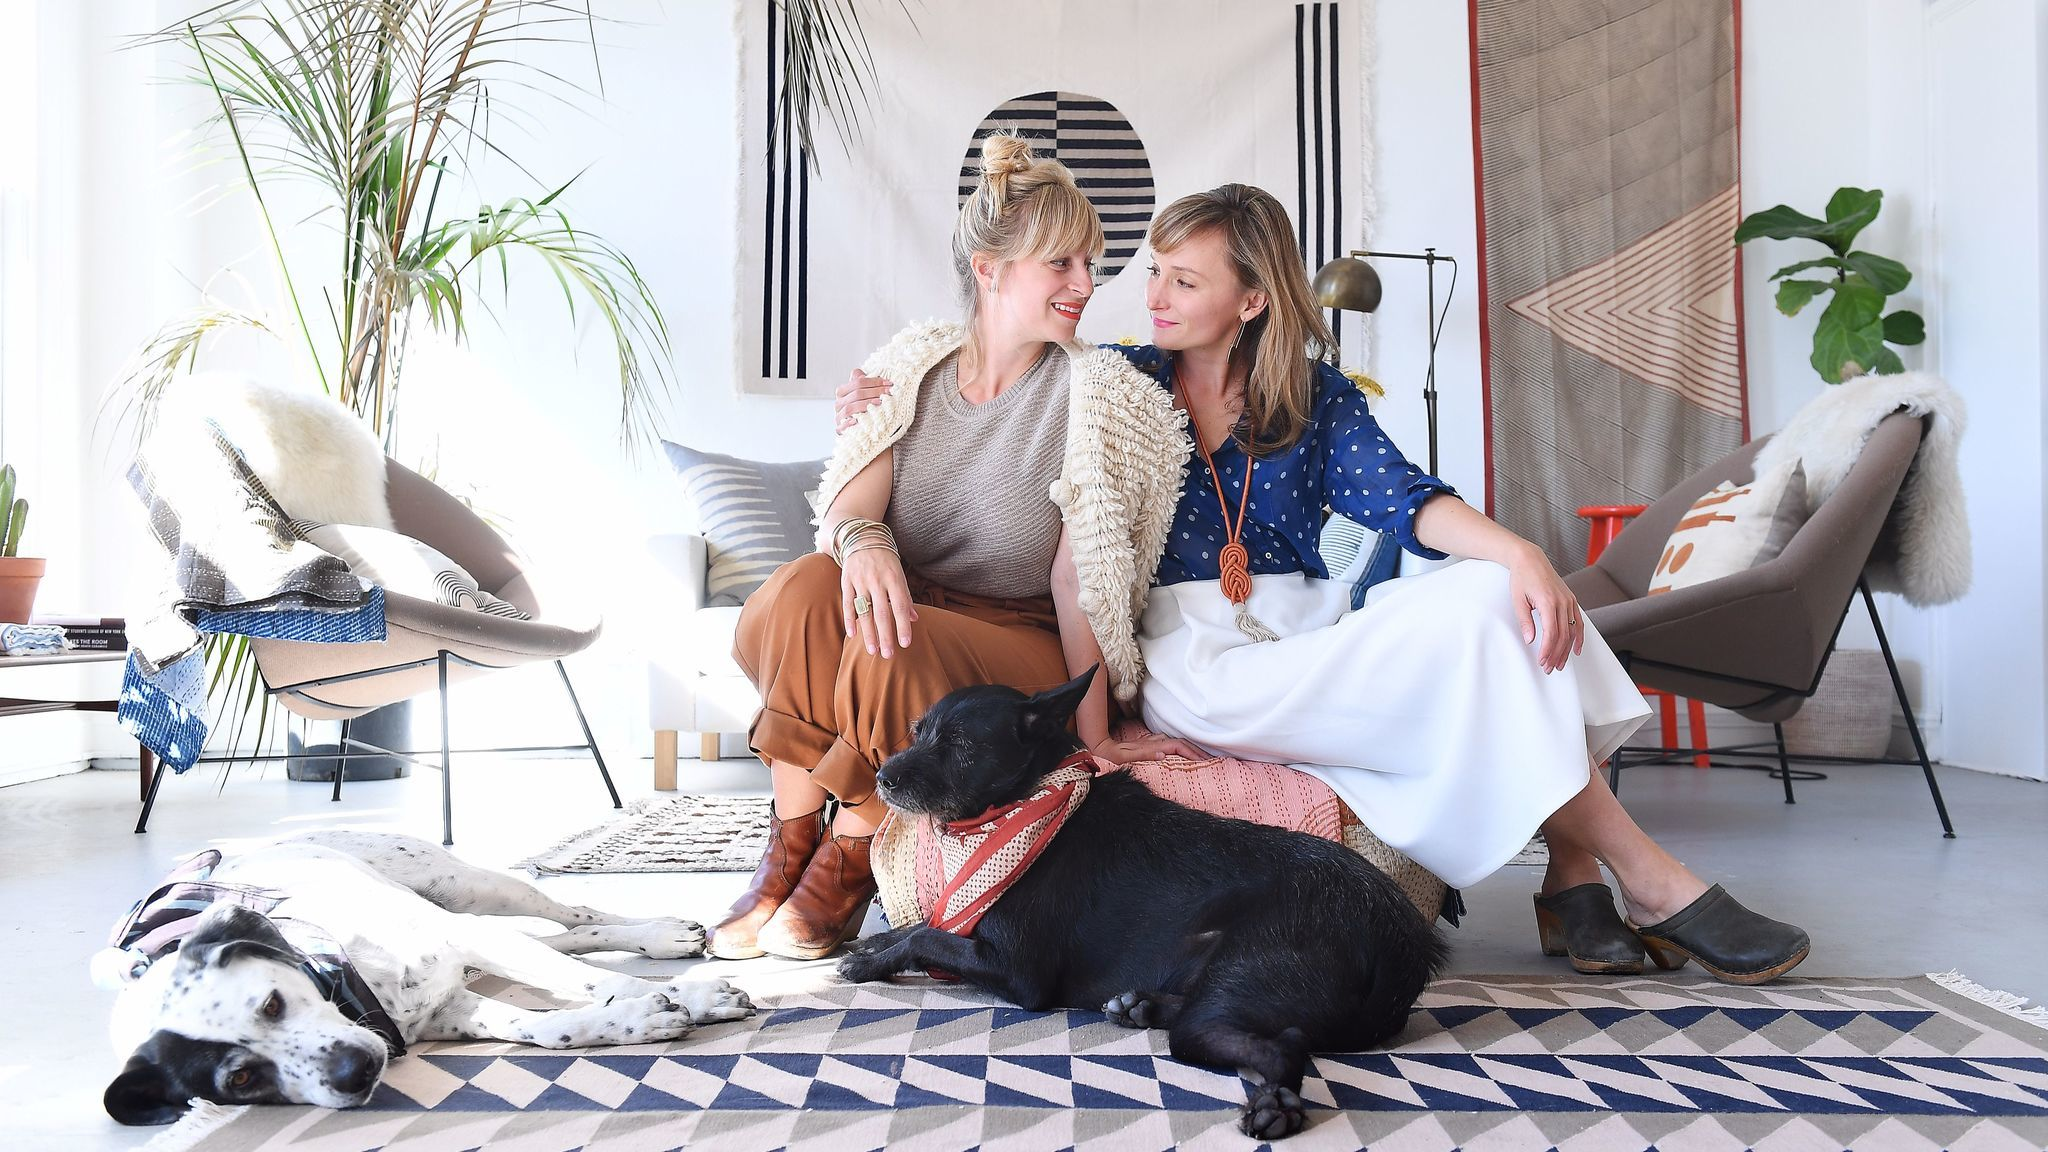 Lily and Hopie Stockman of Block Shop in their downtown Los Angeles studio.